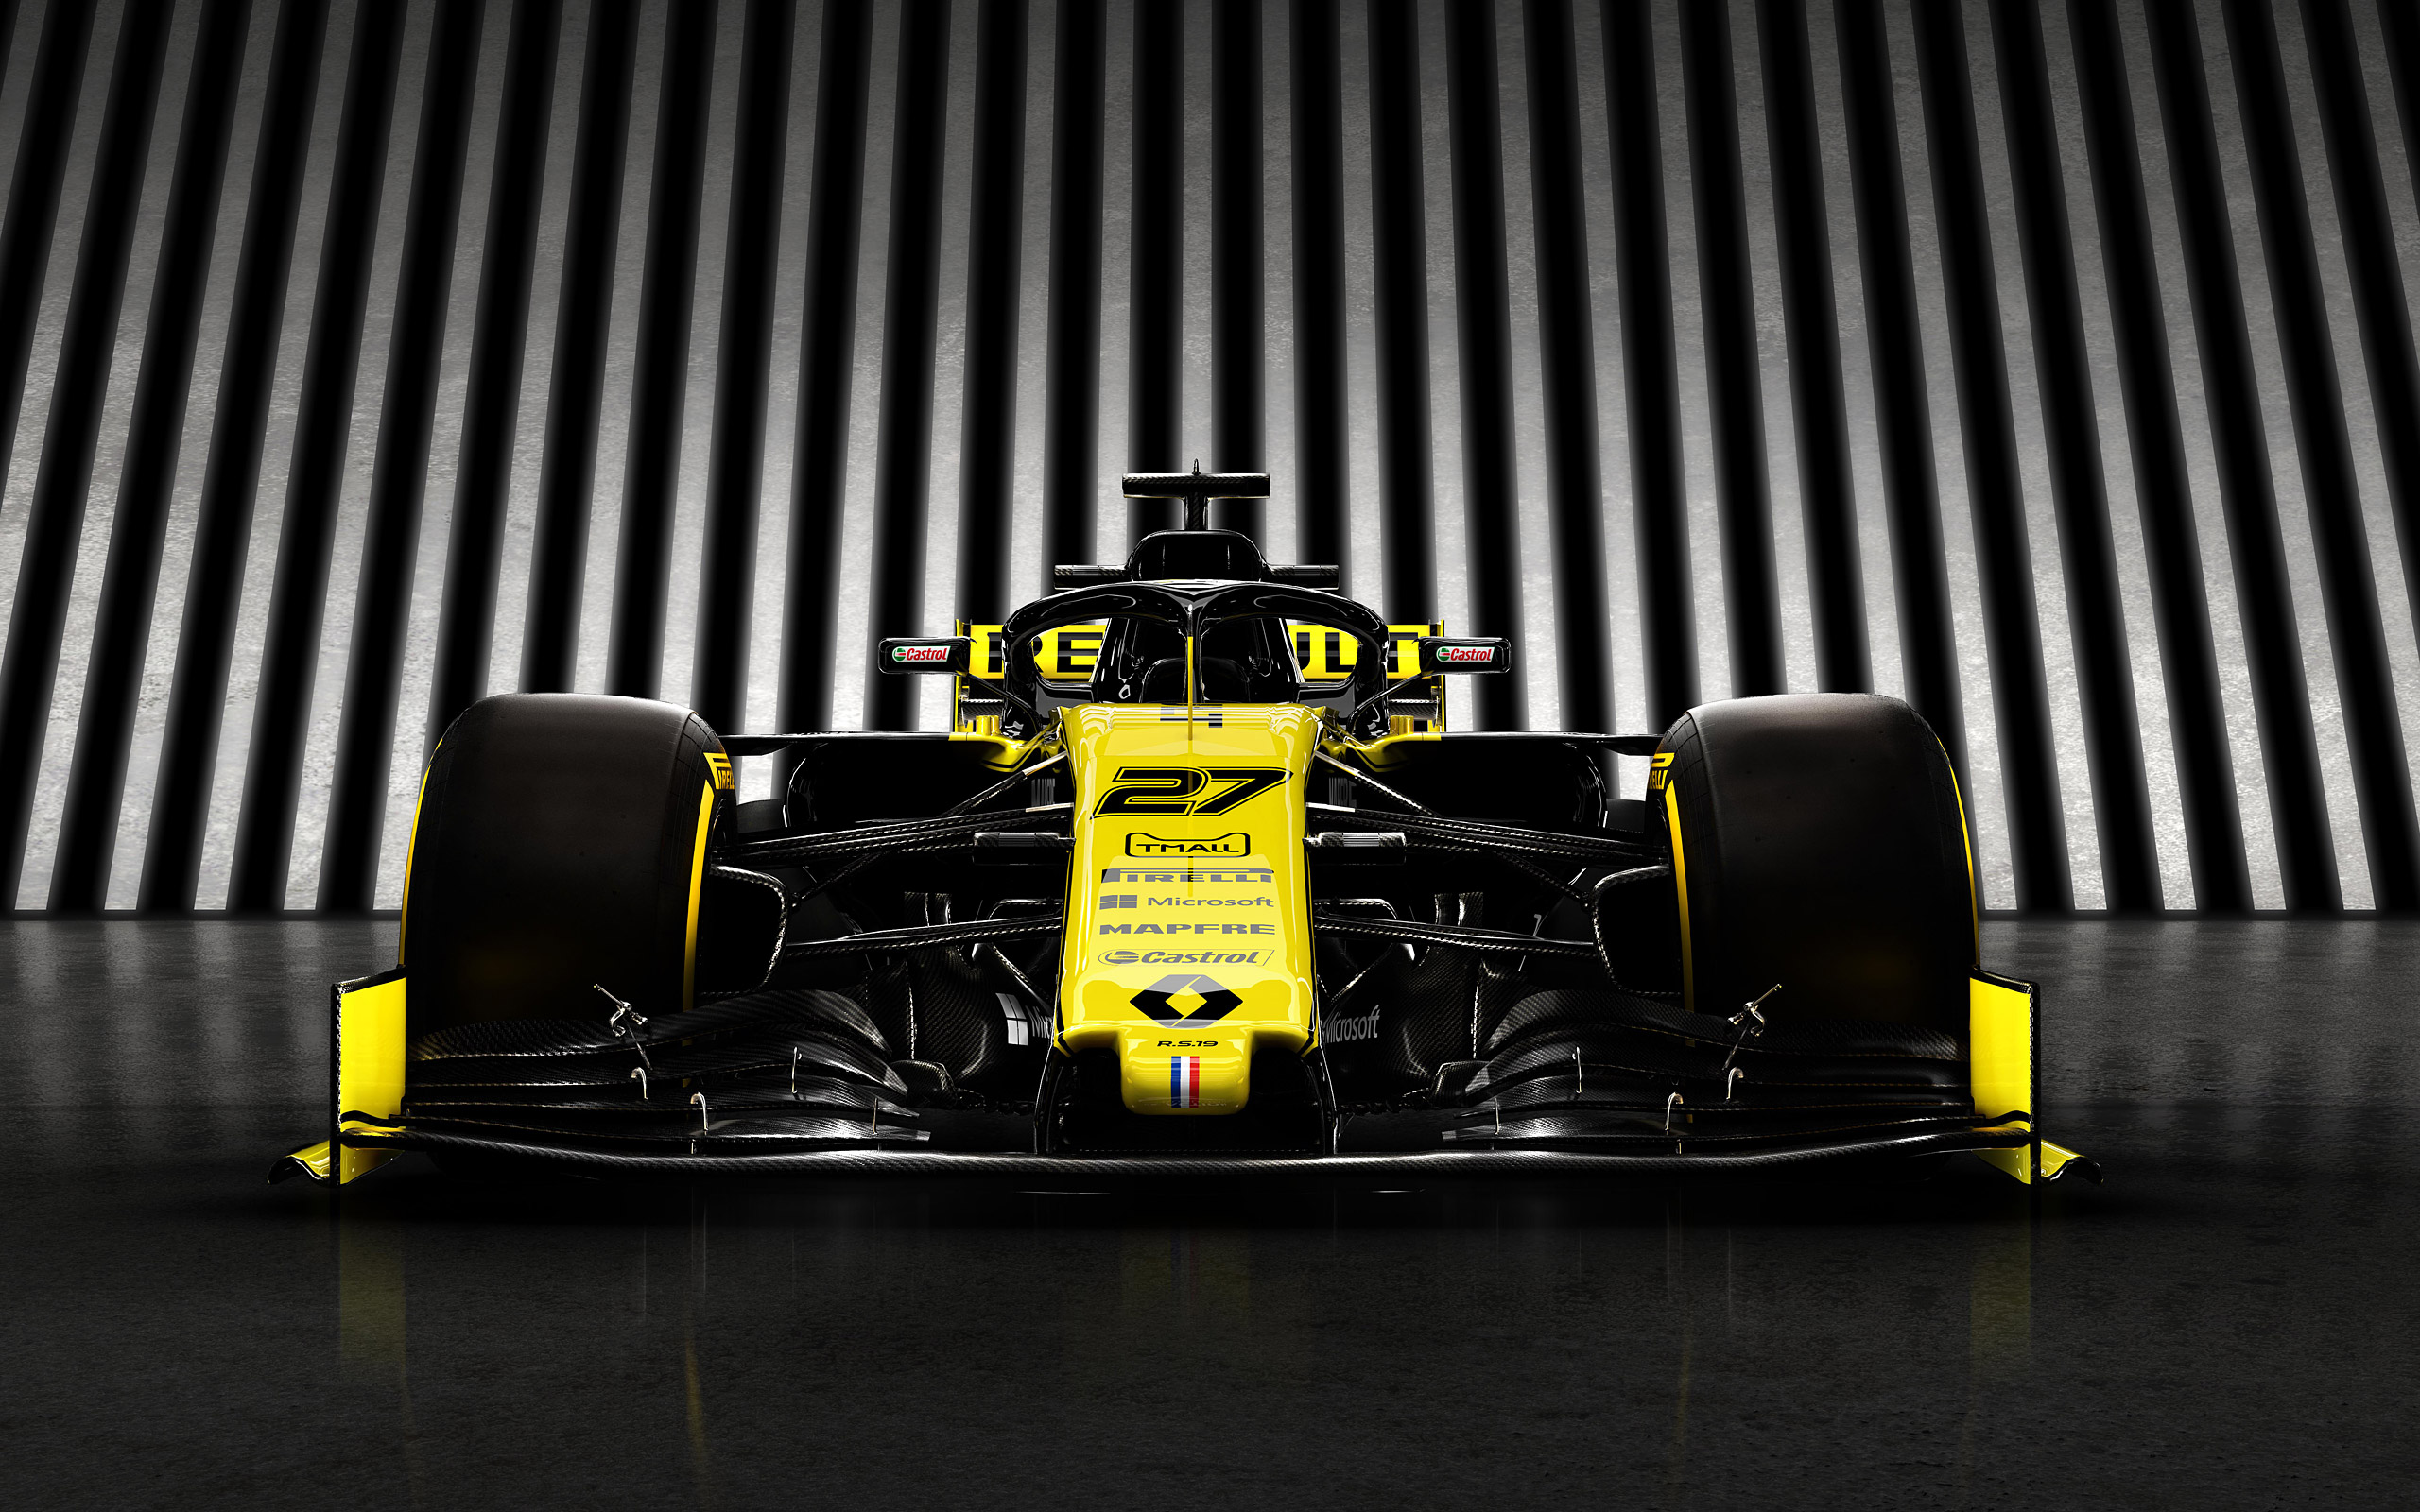 Download wallpapers Renault RS19 2019 Formula 1 car F1 front 2560x1600